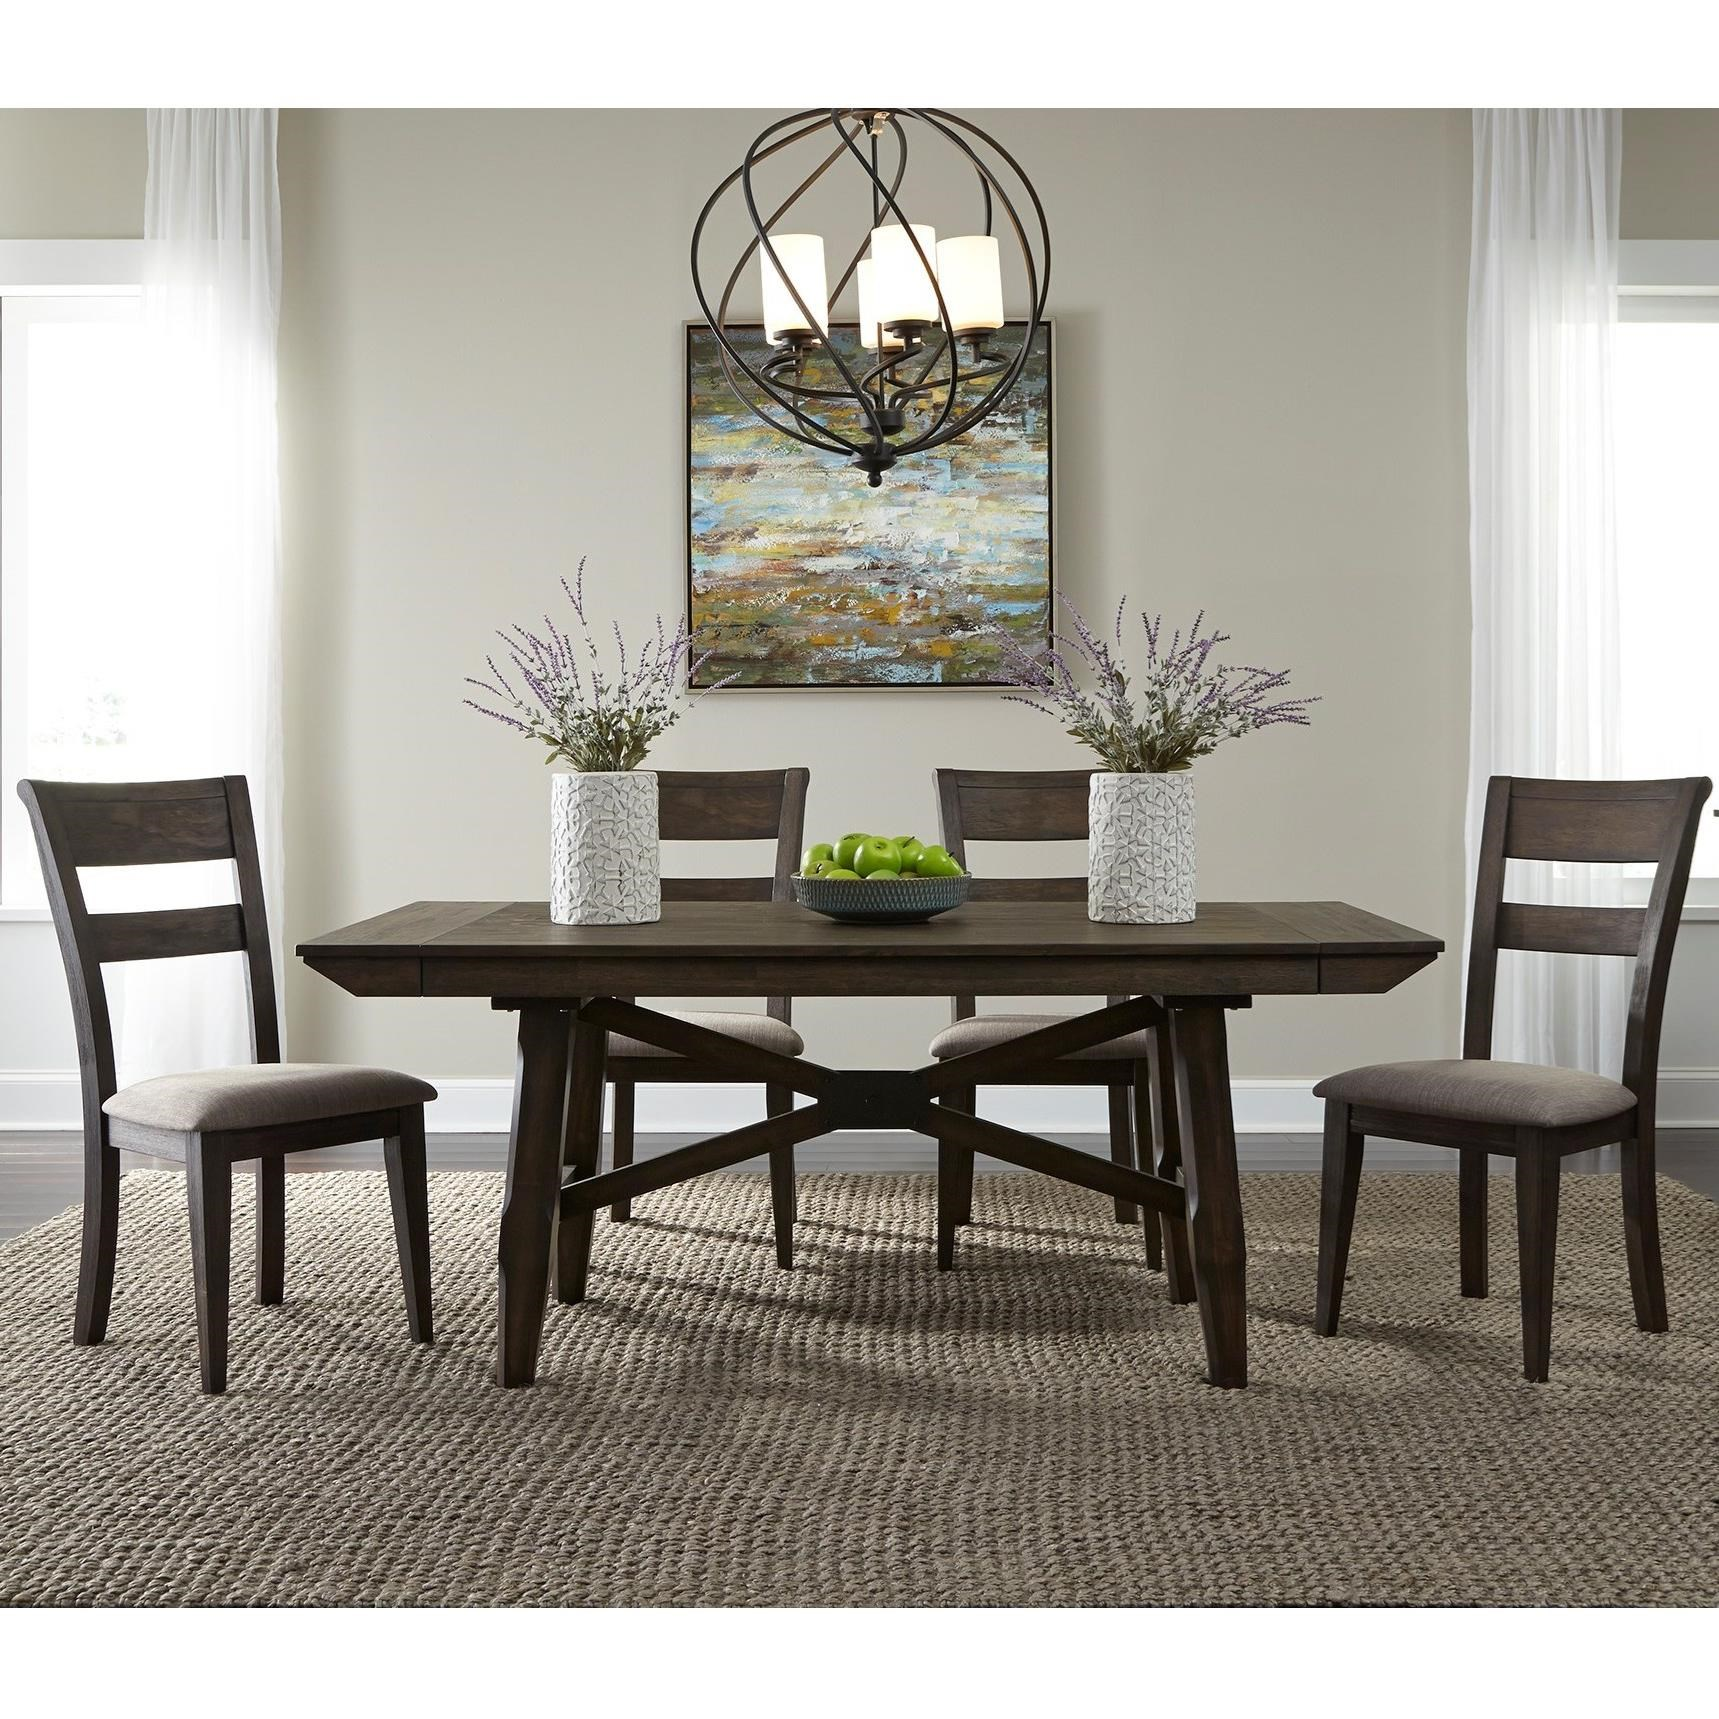 Double Bridge 5 Piece Trestle Table Set  by Libby at Walker's Furniture